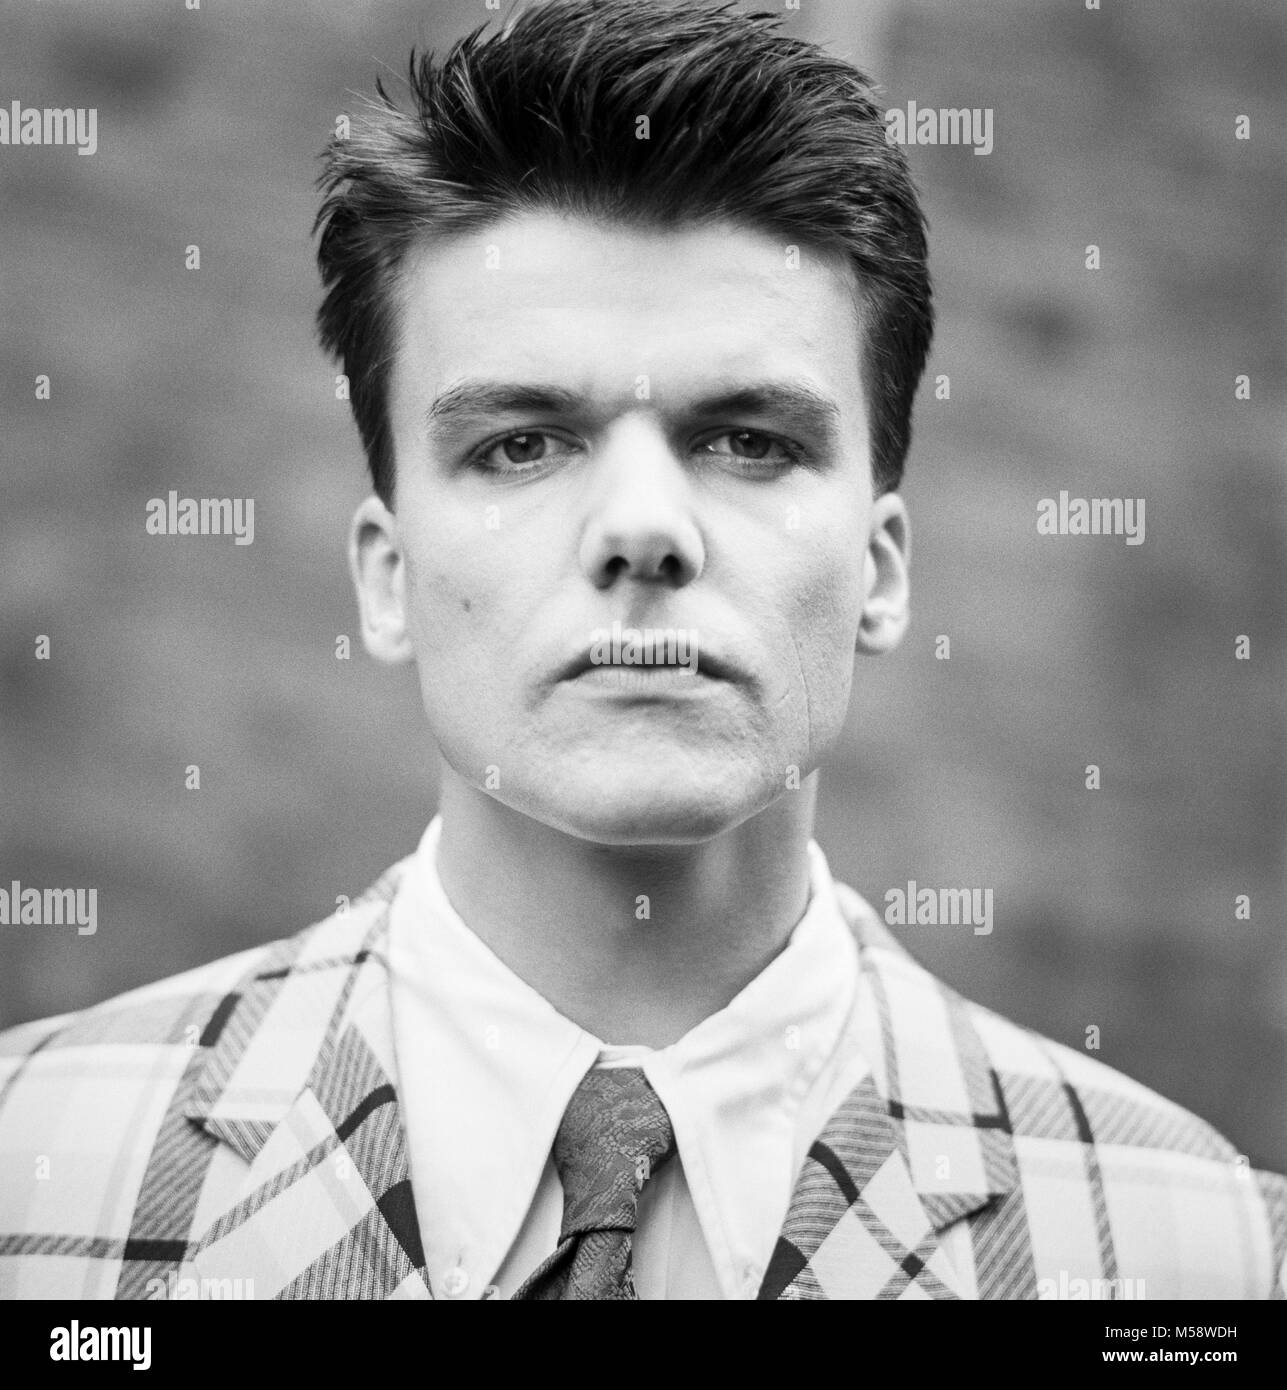 Dr. Robert, Bruce Robert Howard, Lead singer with the Blow Monkeys, archival photograph, 16 June 1989, made for - Stock Image